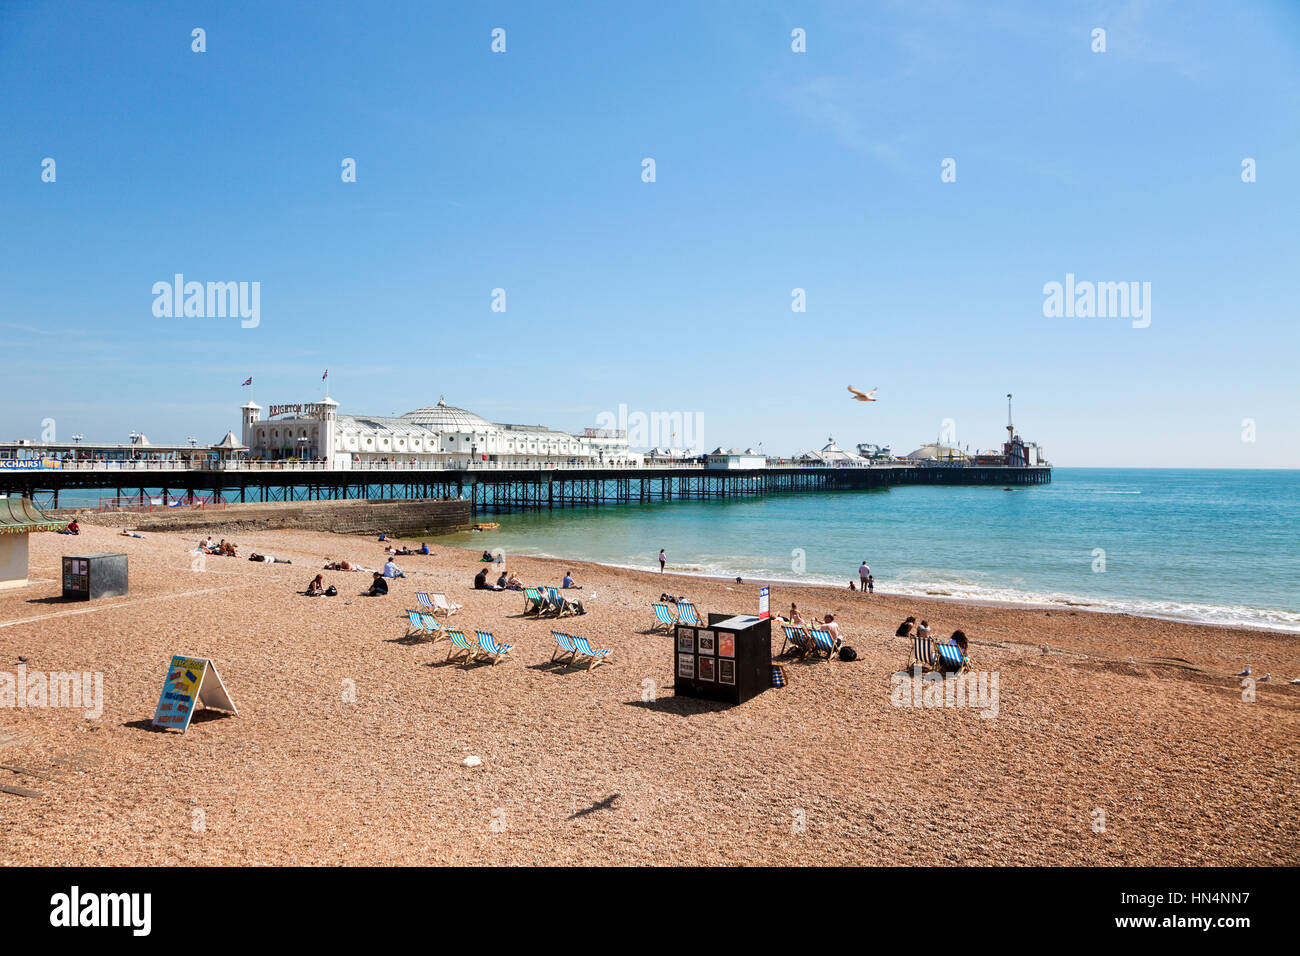 Brighton, Sussex, United Kingdom - May 16, 2014: Tourists relaxing on the beach next to the Brighton Pier from 1899. - Stock Image